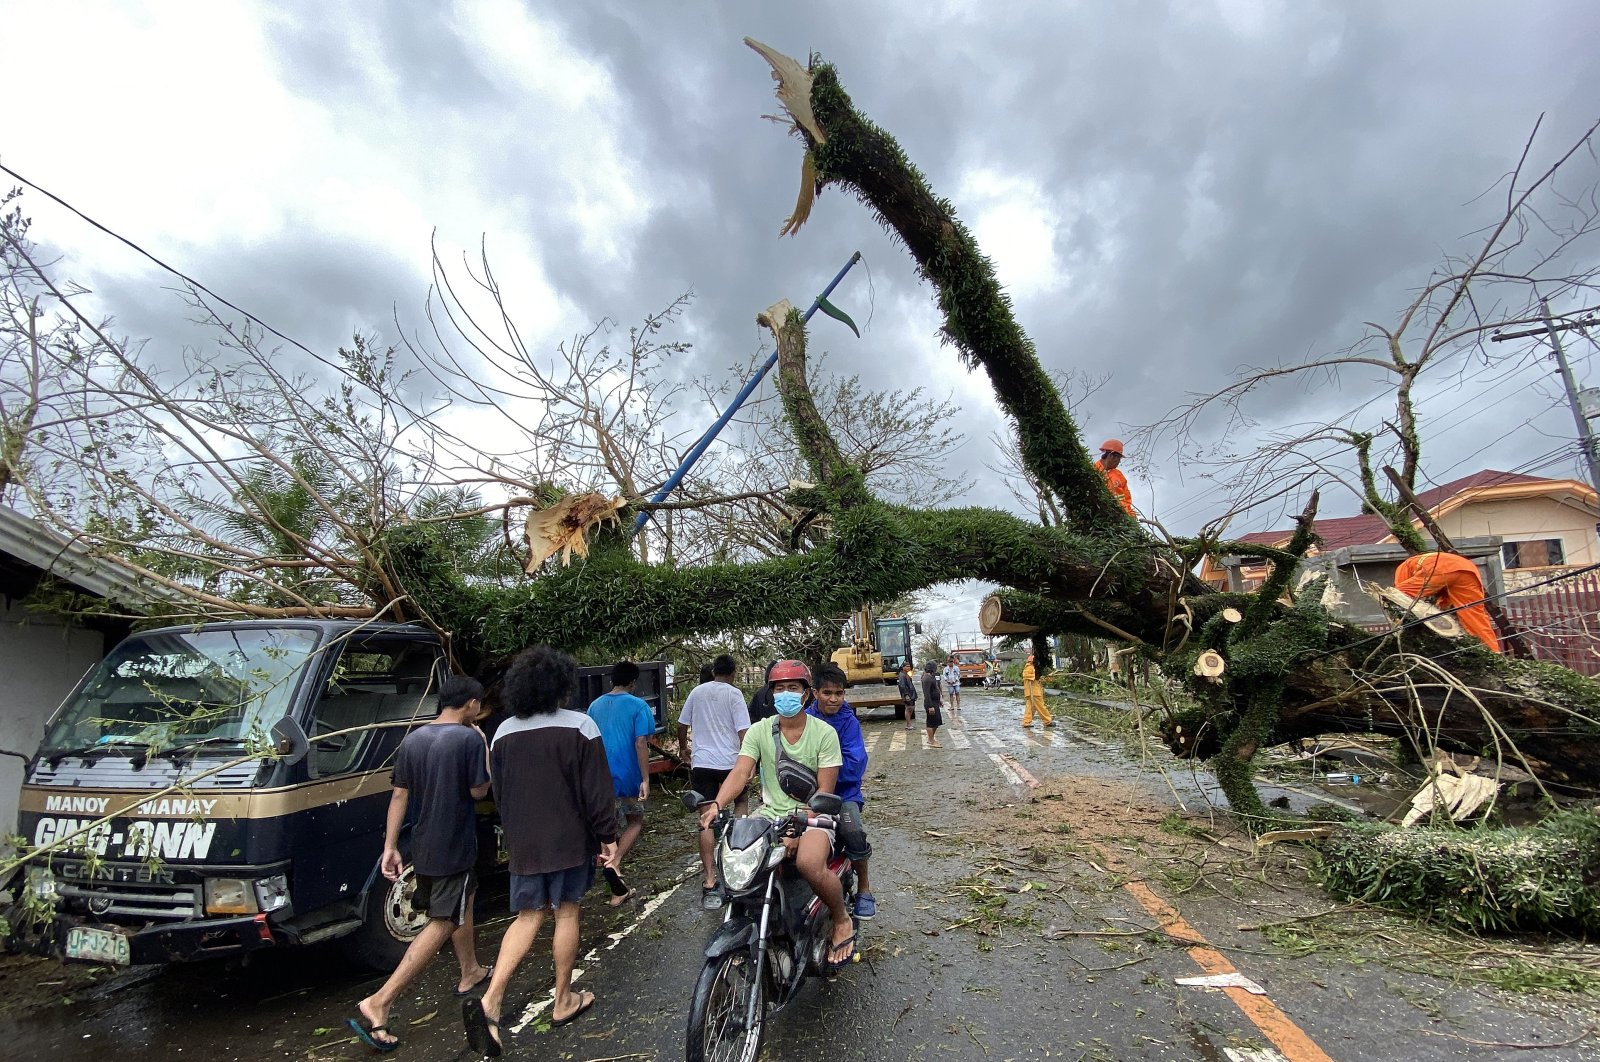 Filipino villagers maneuver under a toppled tree in the typhoon-hit town of Tigaon, Camarines Sur, Philippines, 01 November 2020. Super Typhoon Goni, with winds forecasted to reach 249 kilometers per hour, made landfall in the provinces of Albay and Camarines sur, according to the local weather bureau. (EPA Photo)